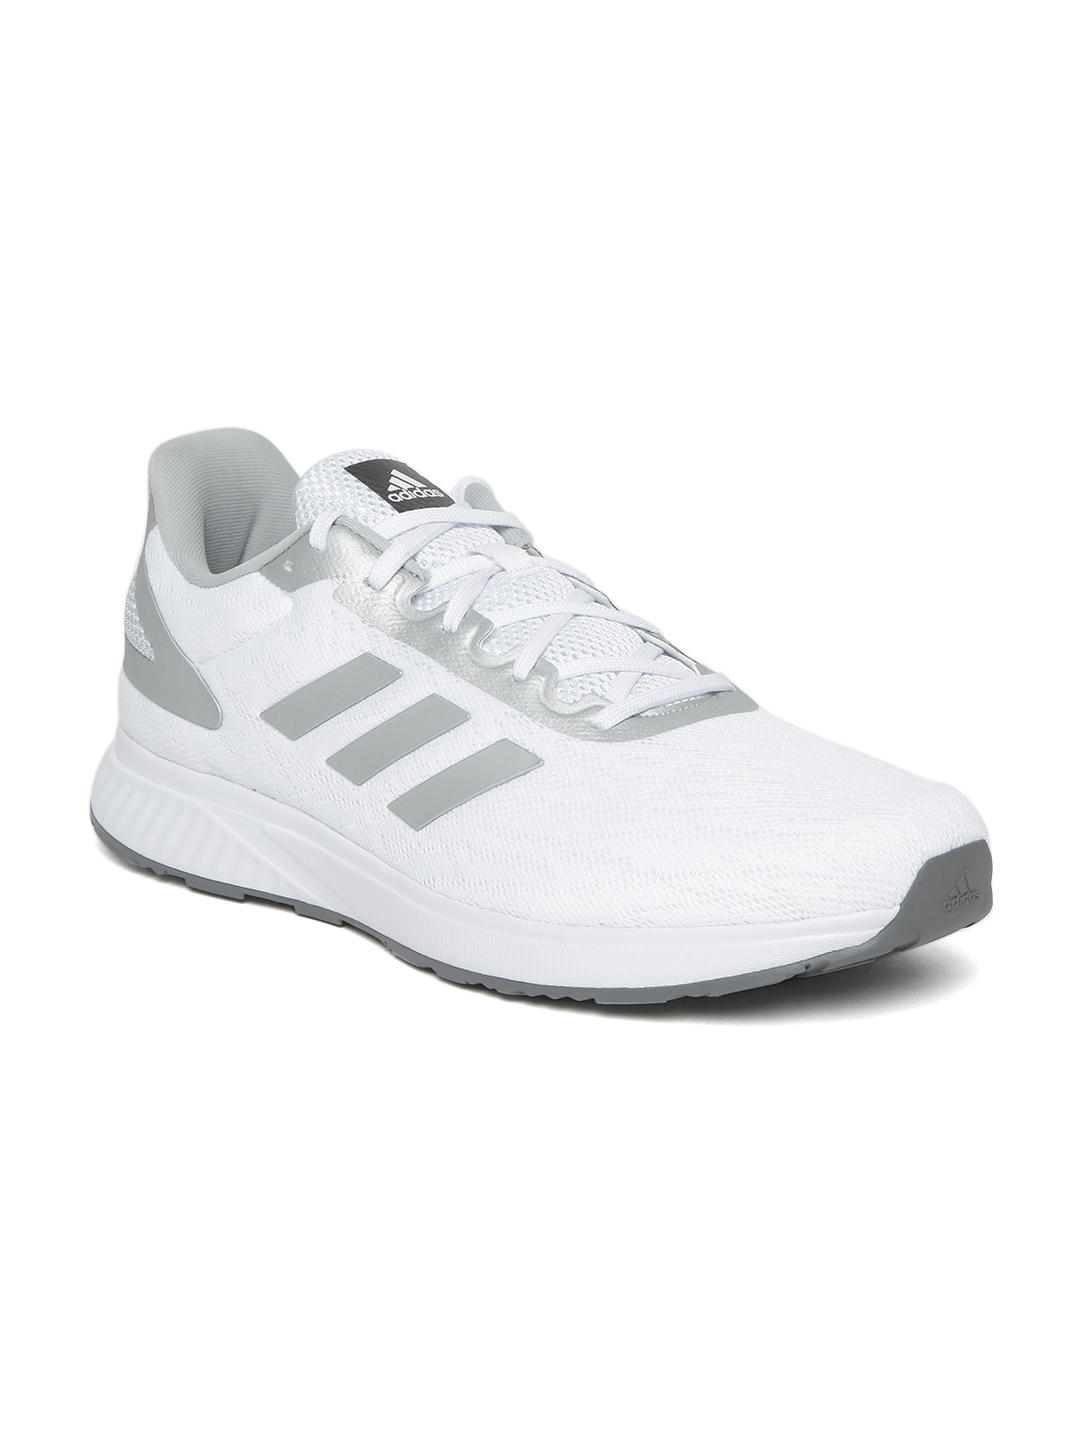 63d446a45aedb3 Buy ADIDAS Men White Kalus Running Shoes - Sports Shoes for Men ...